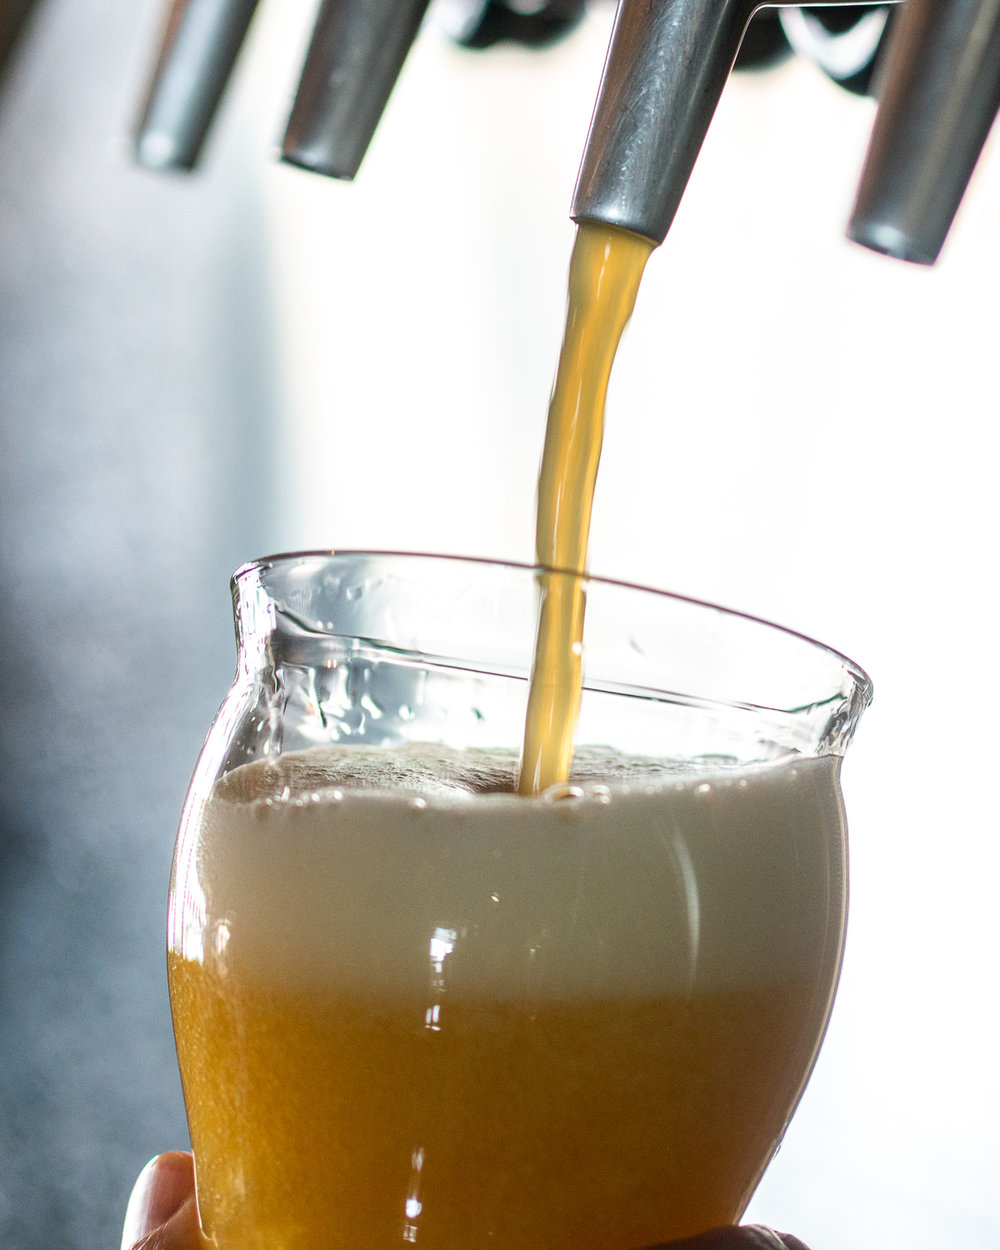 Beer-Pouring-Close-Up.jpg